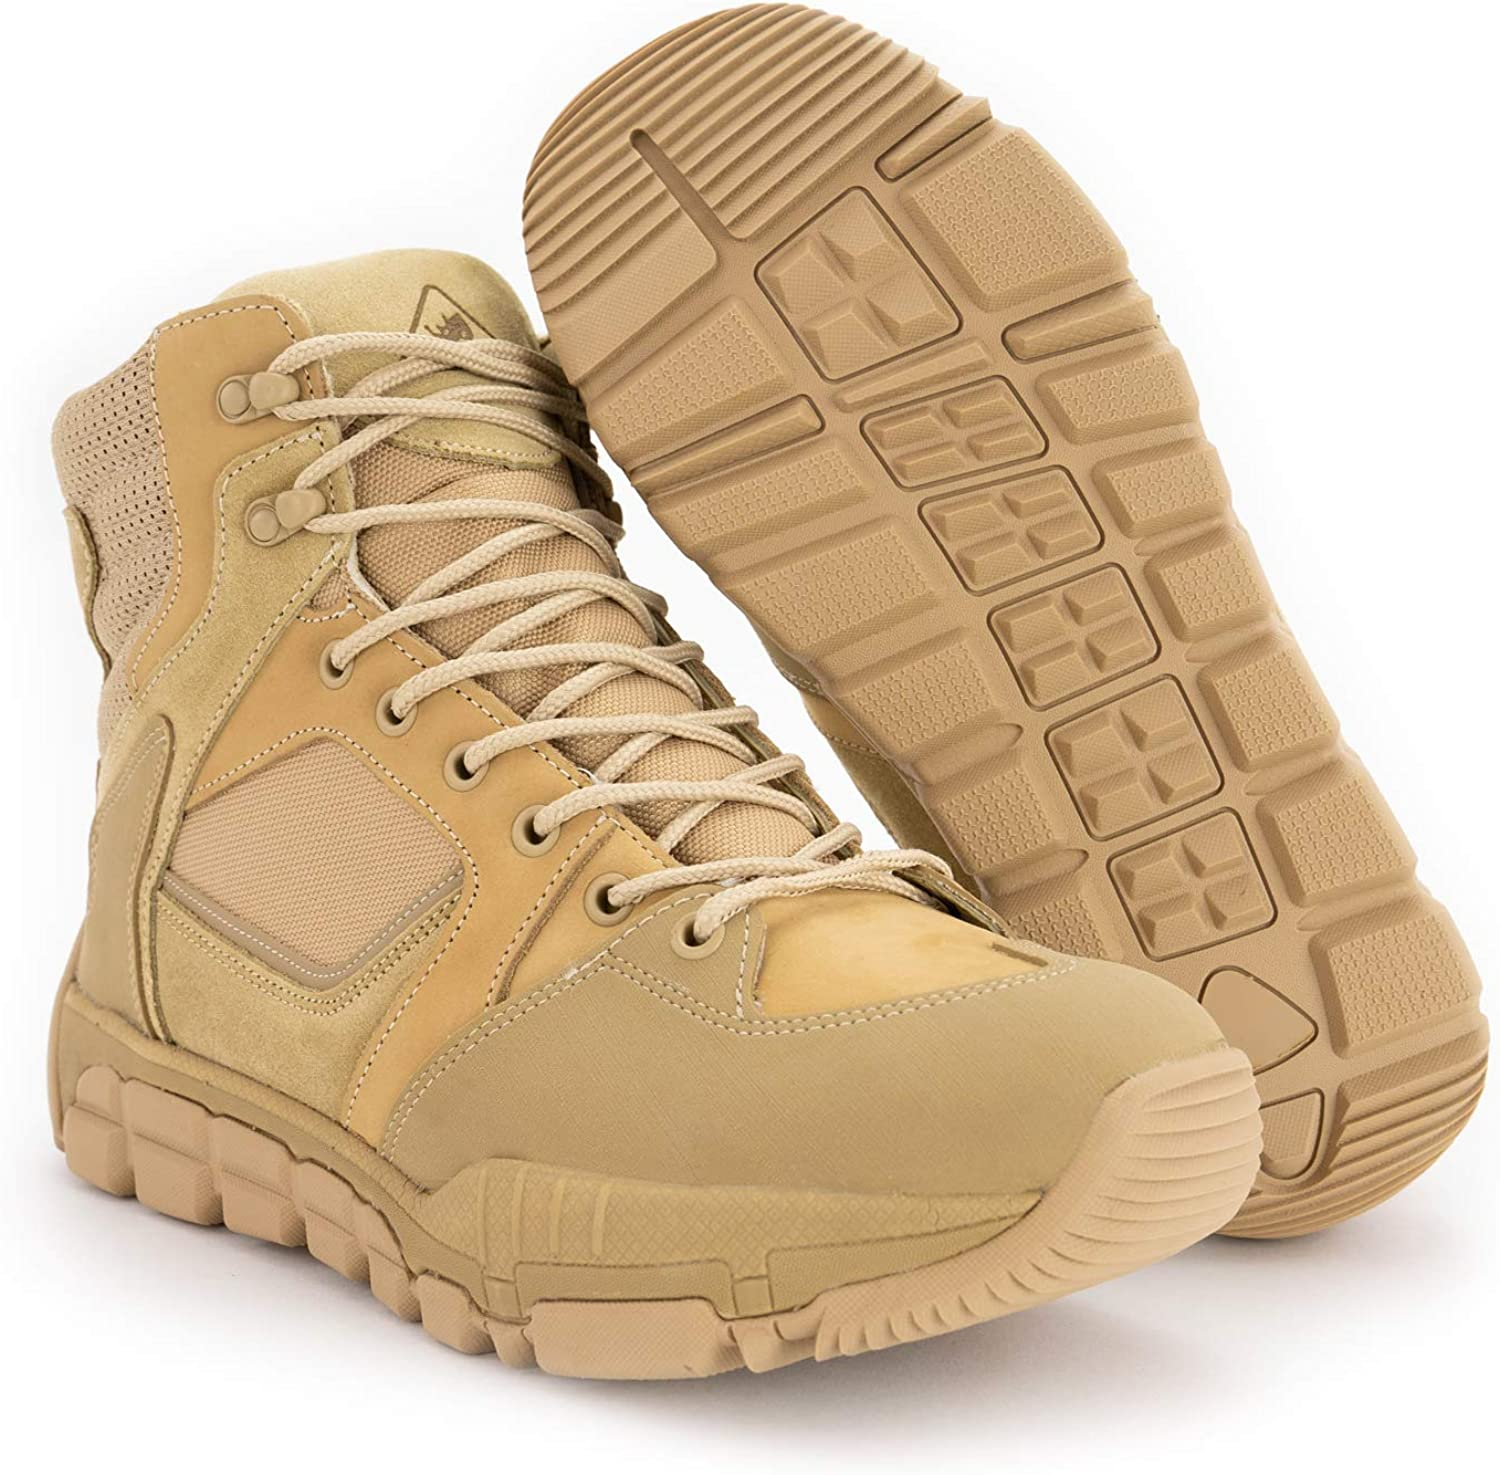 Sales of SALE items from new works RYNO GEAR Trek Year-end gift Coolmax Boots Tactical Zip Side